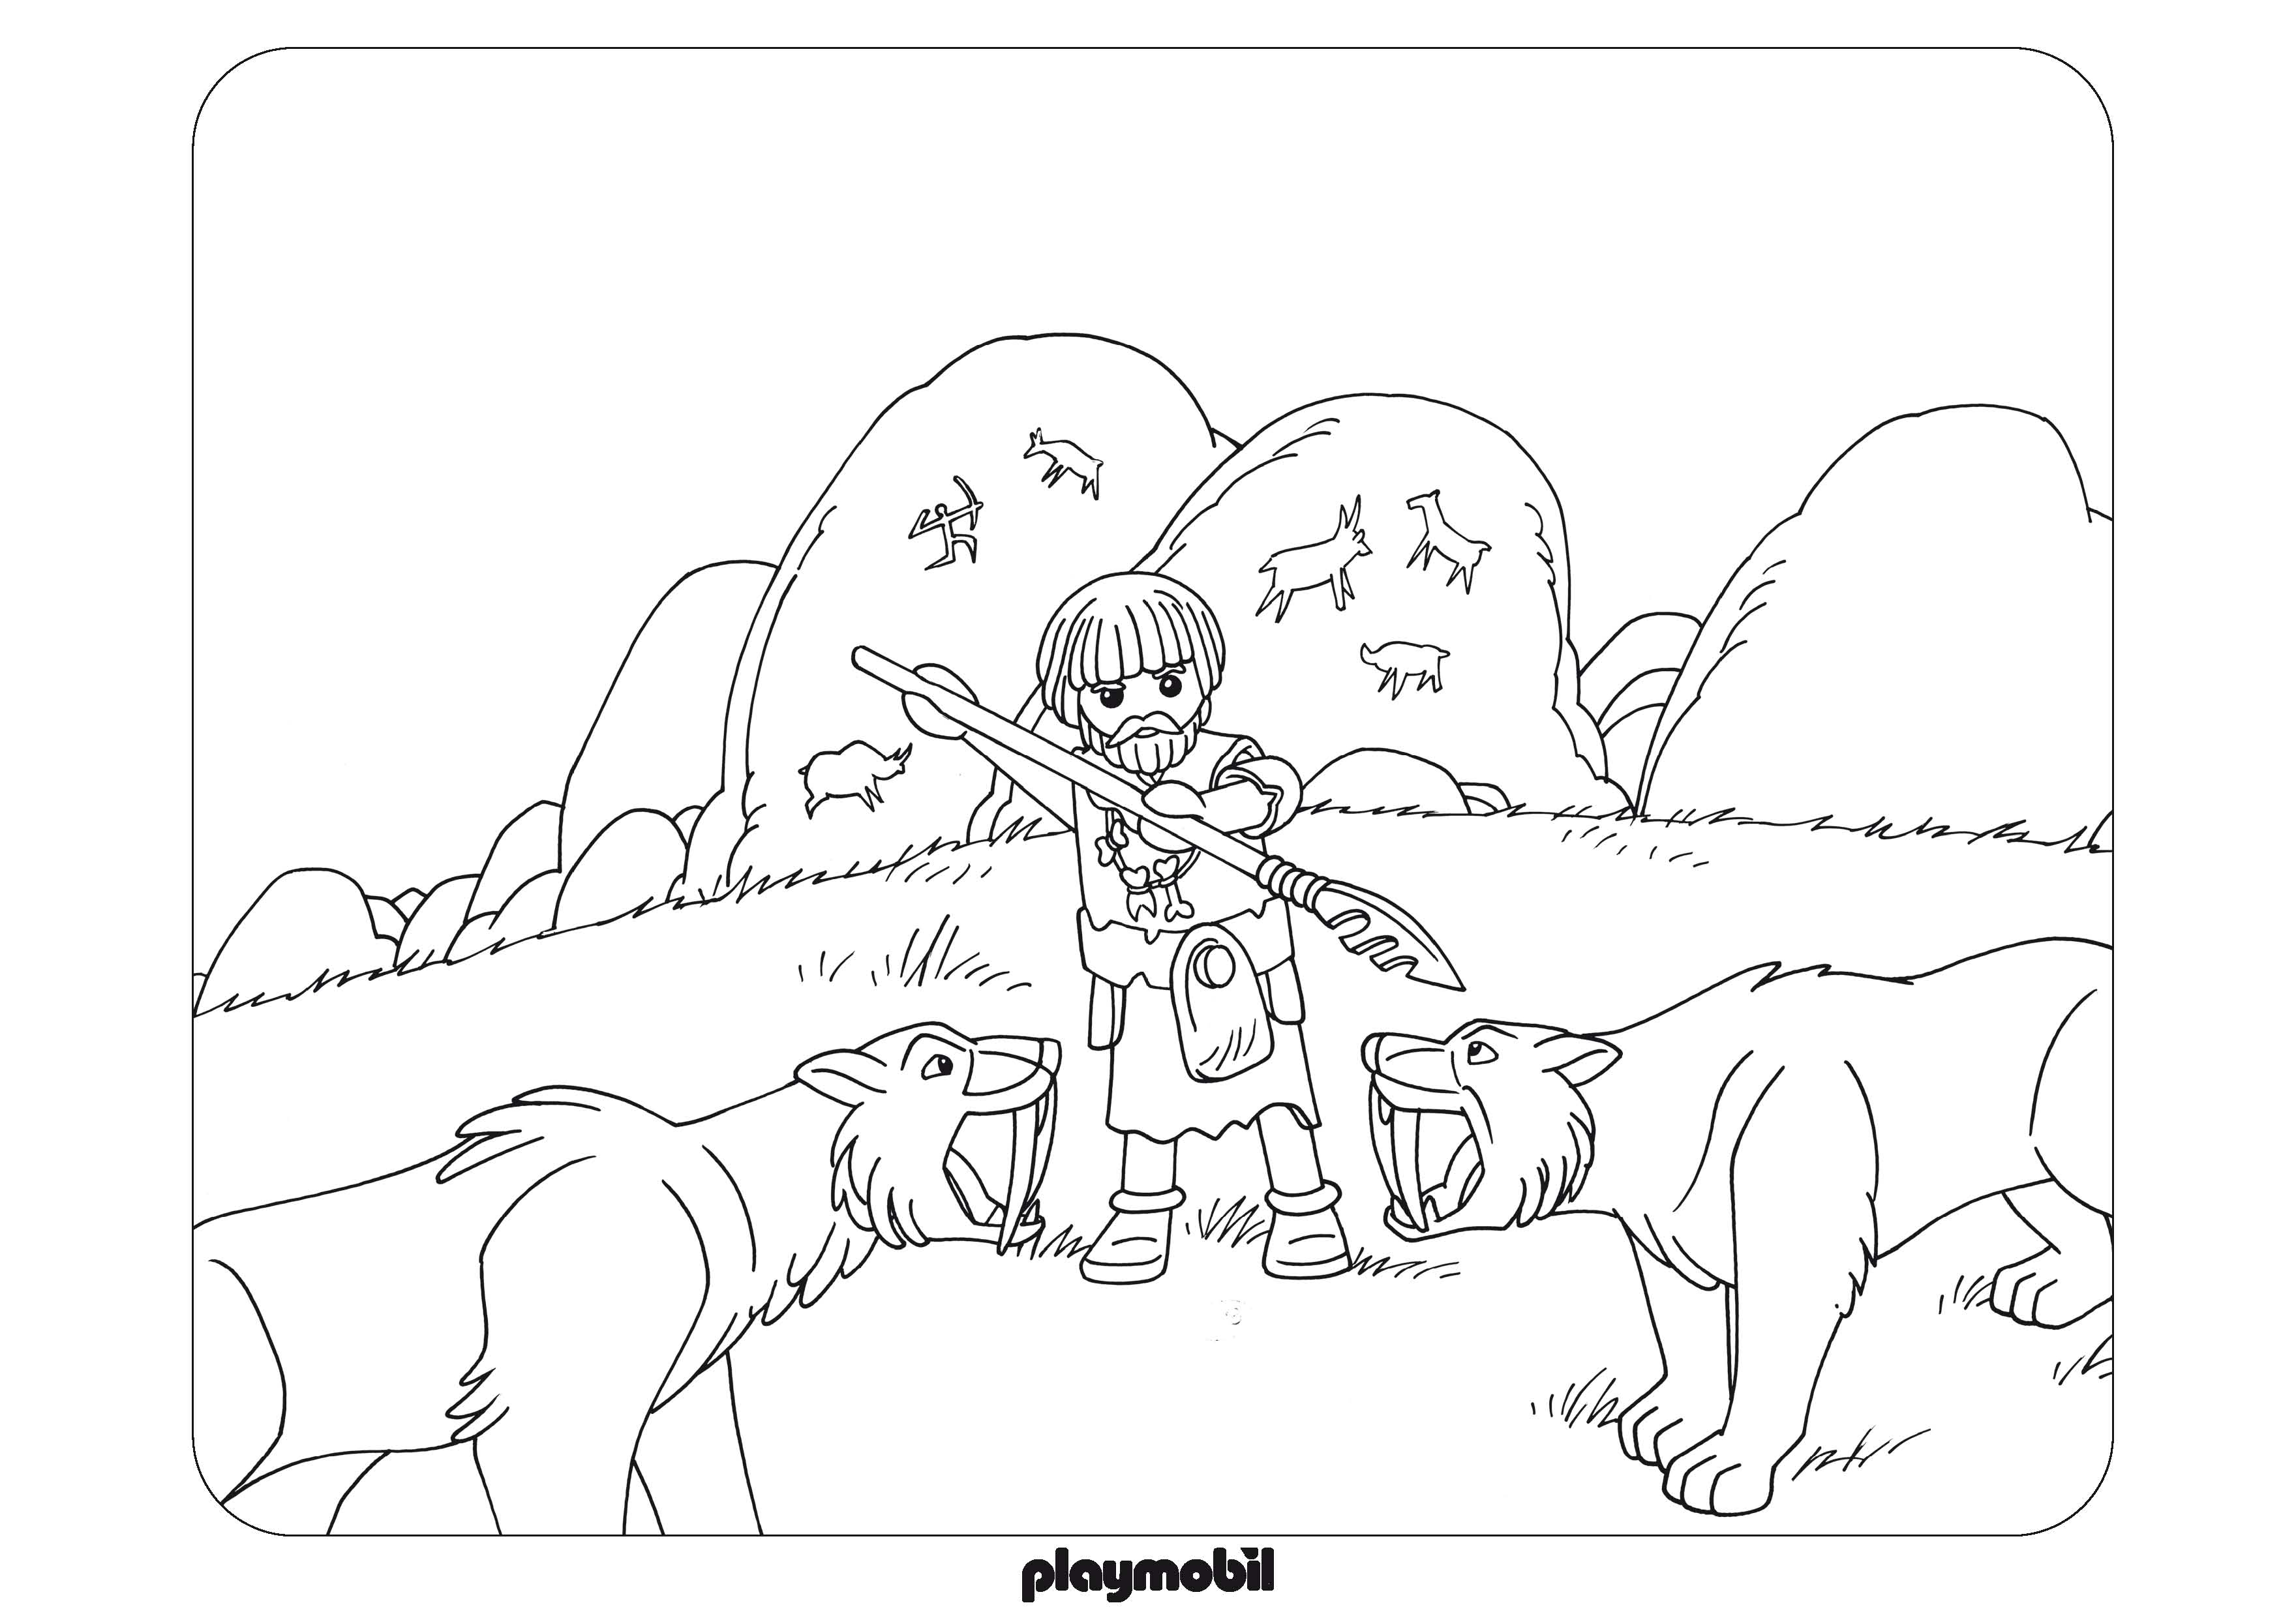 playmobil coloring pages  best coloring pages for kids